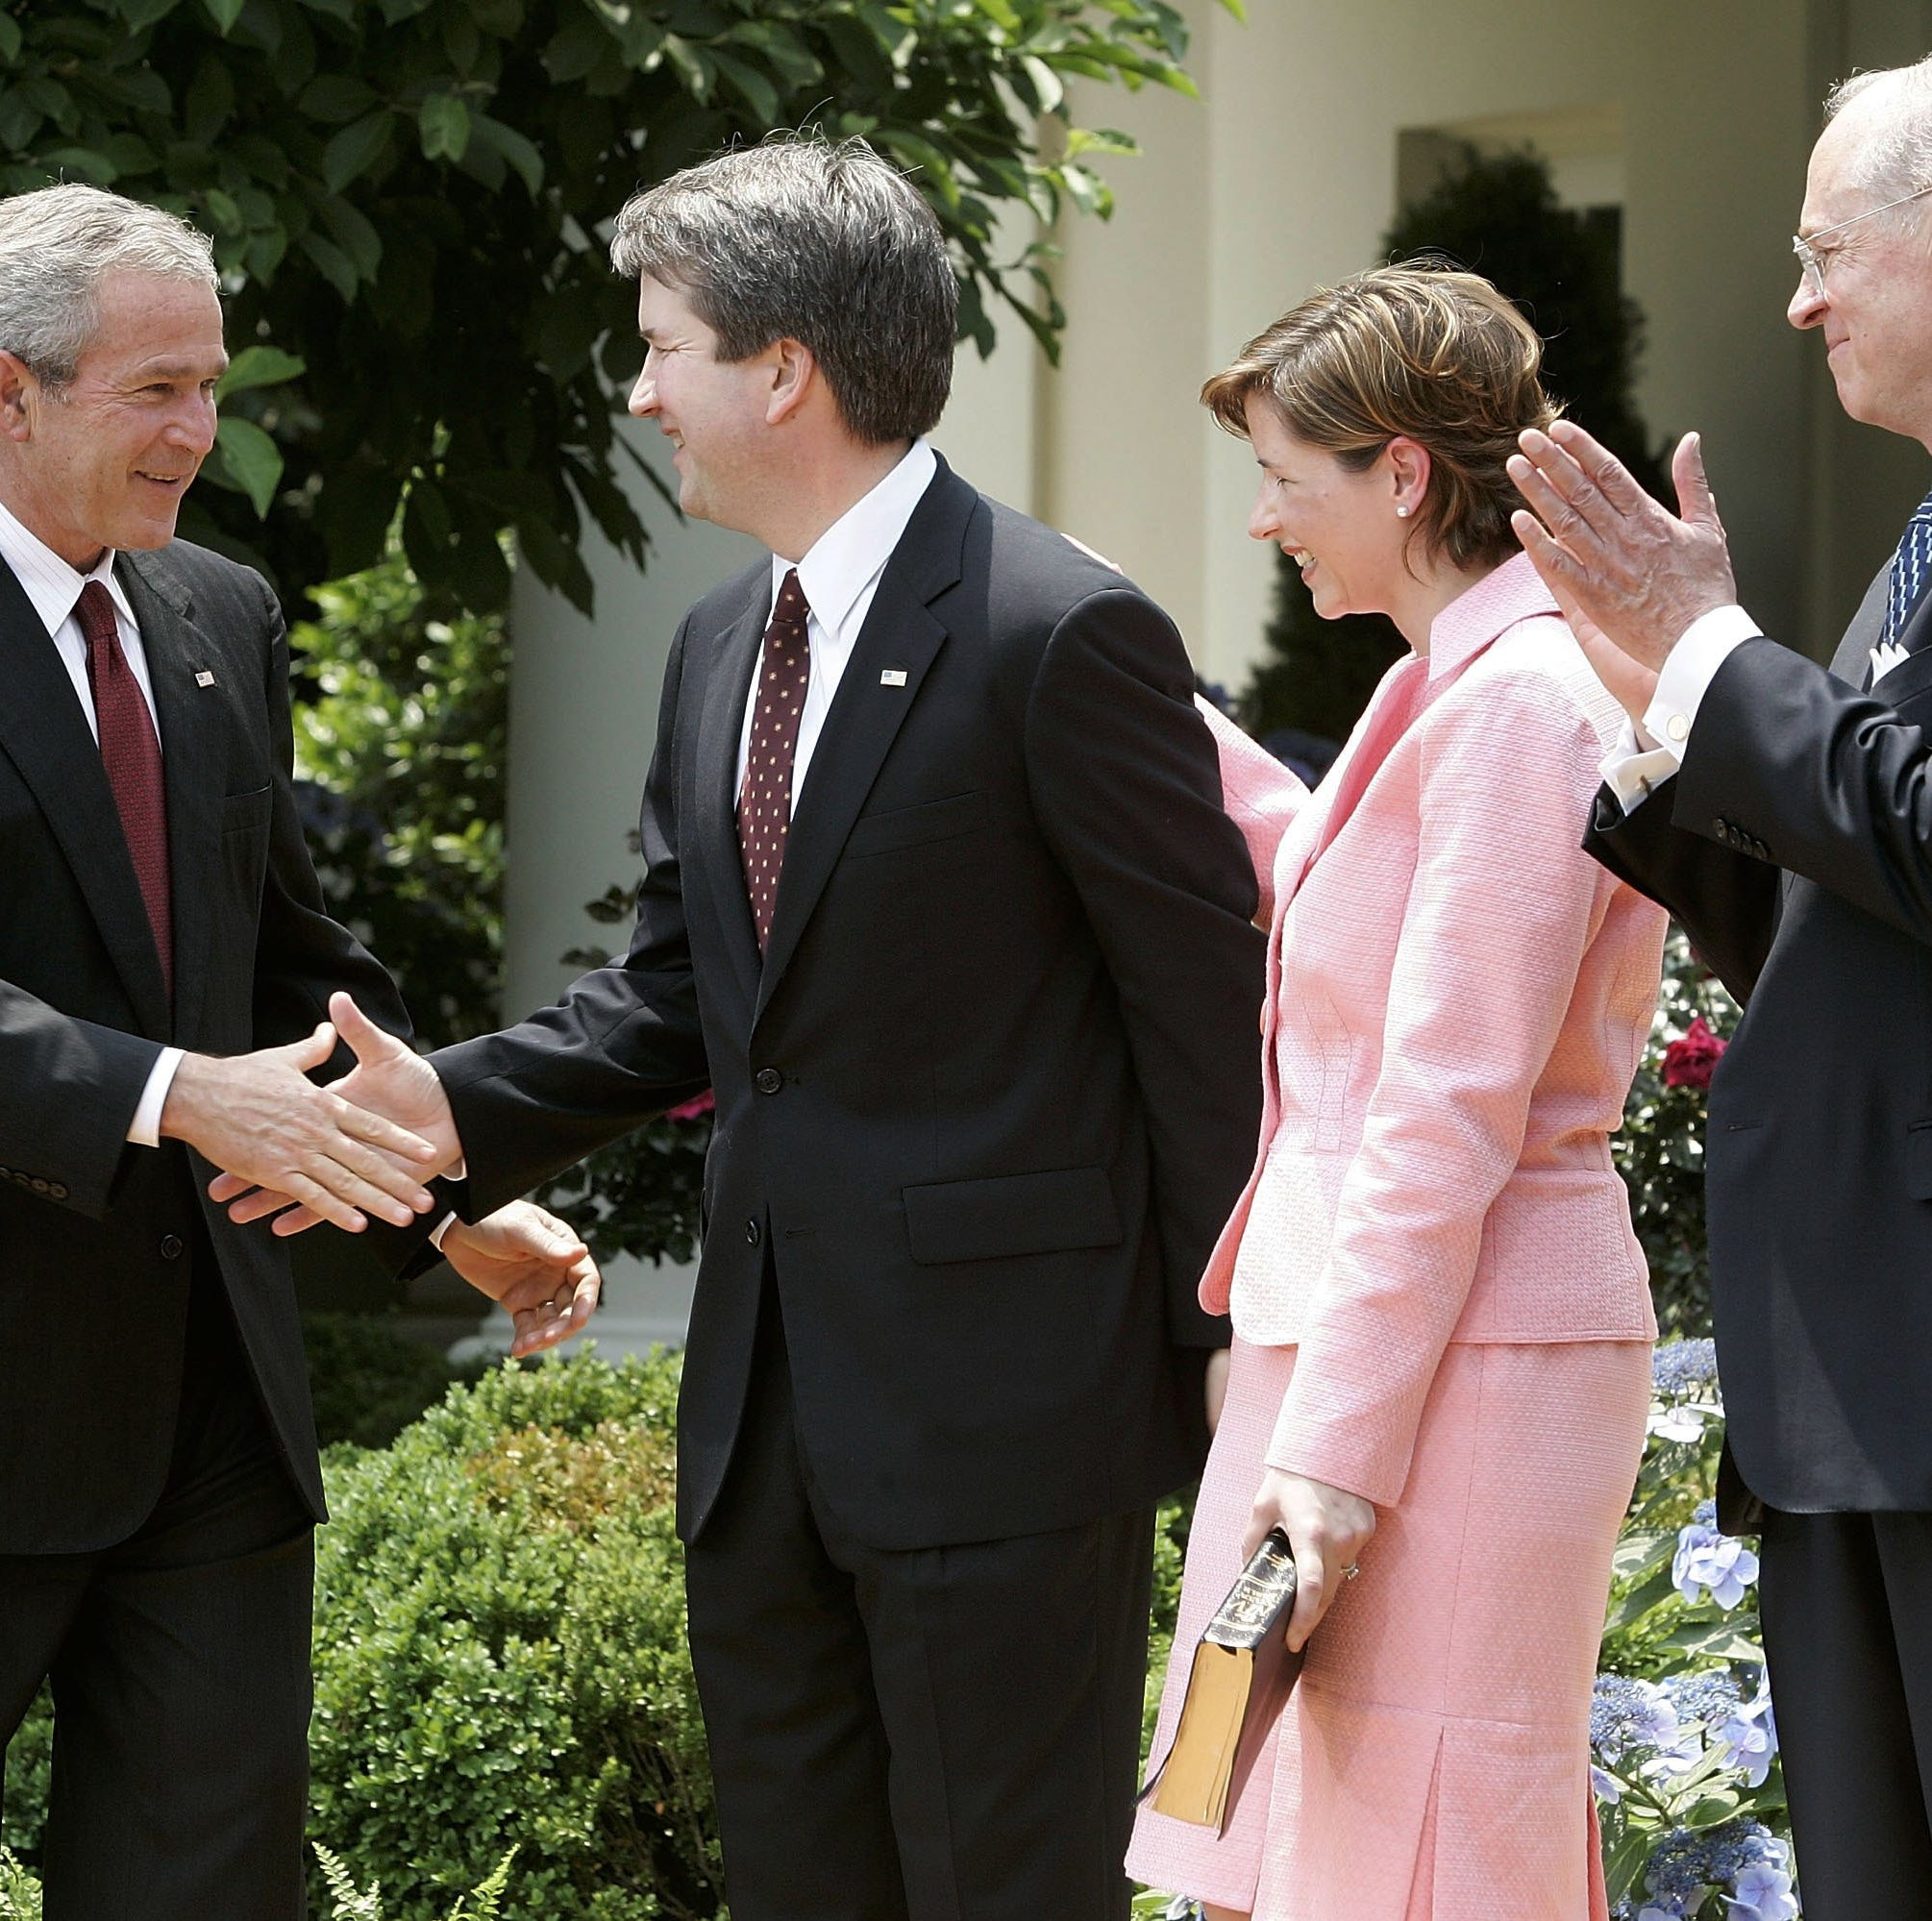 Brett Kavanaugh shakes hands with President George W. Bush after being sworn in by Supreme Court Justice Anthony Kennedy to be a judge on the U.S. Court of Appeals for the District of Columbia Circuit. His wife, Ashley, looks on.